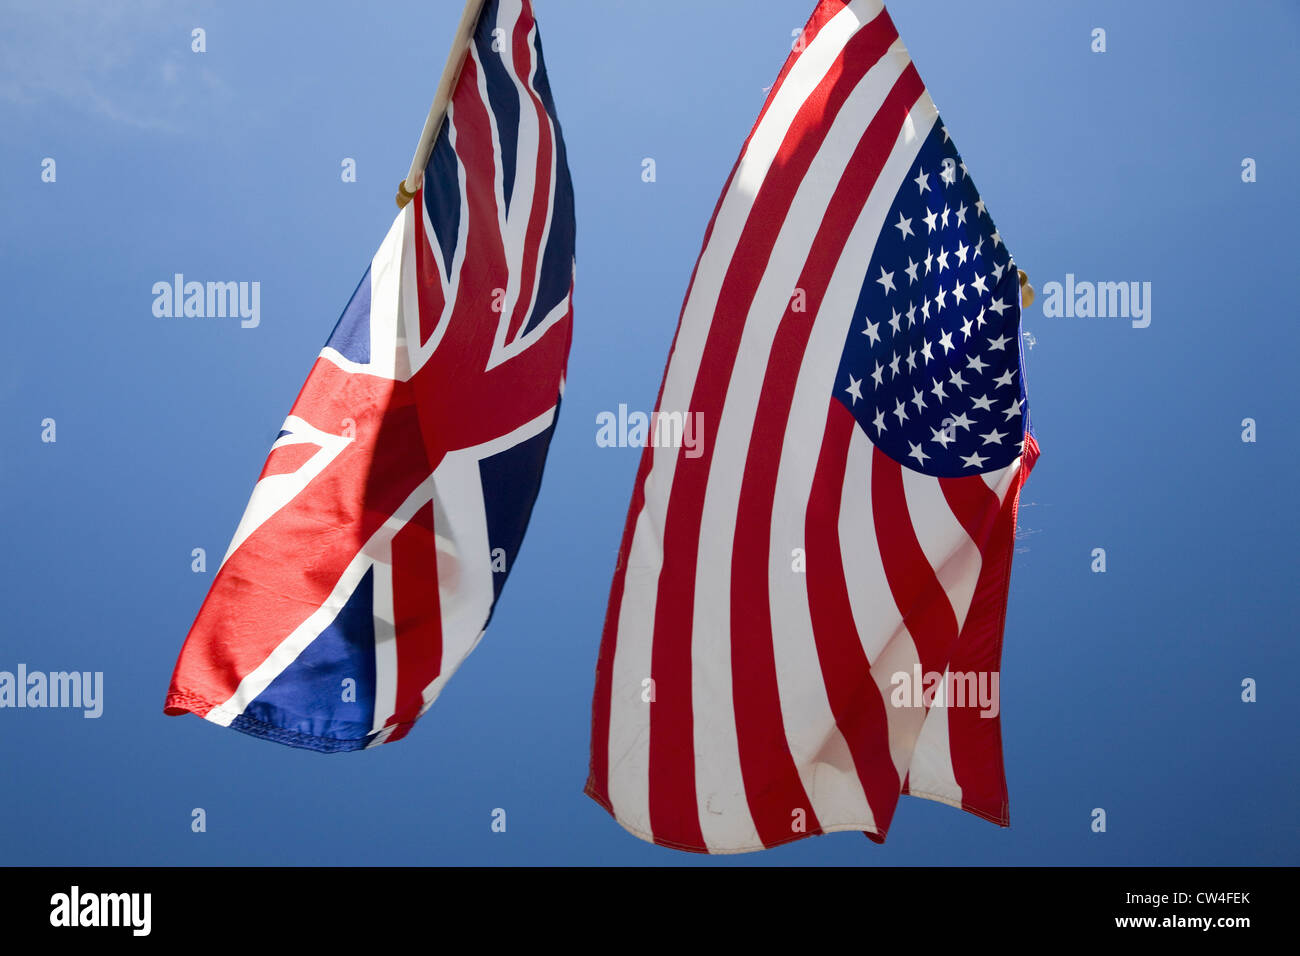 american flag hanging with union jack british flag next to white